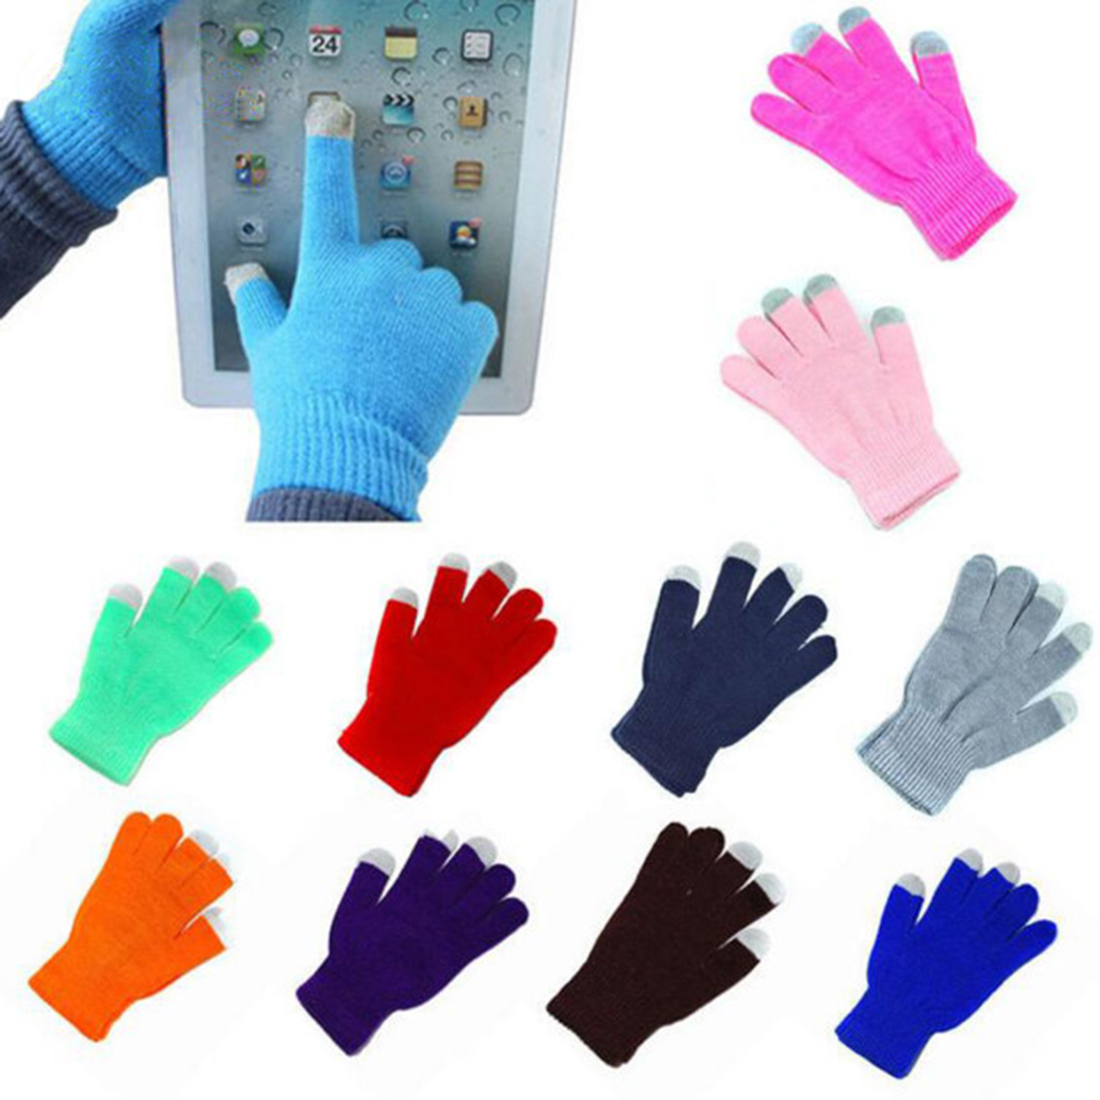 Fashion Solid Color Women Gloves Full Finger Mittens Winter Knitting Touch Screen Gloves Thickening Warm Driving Gloves